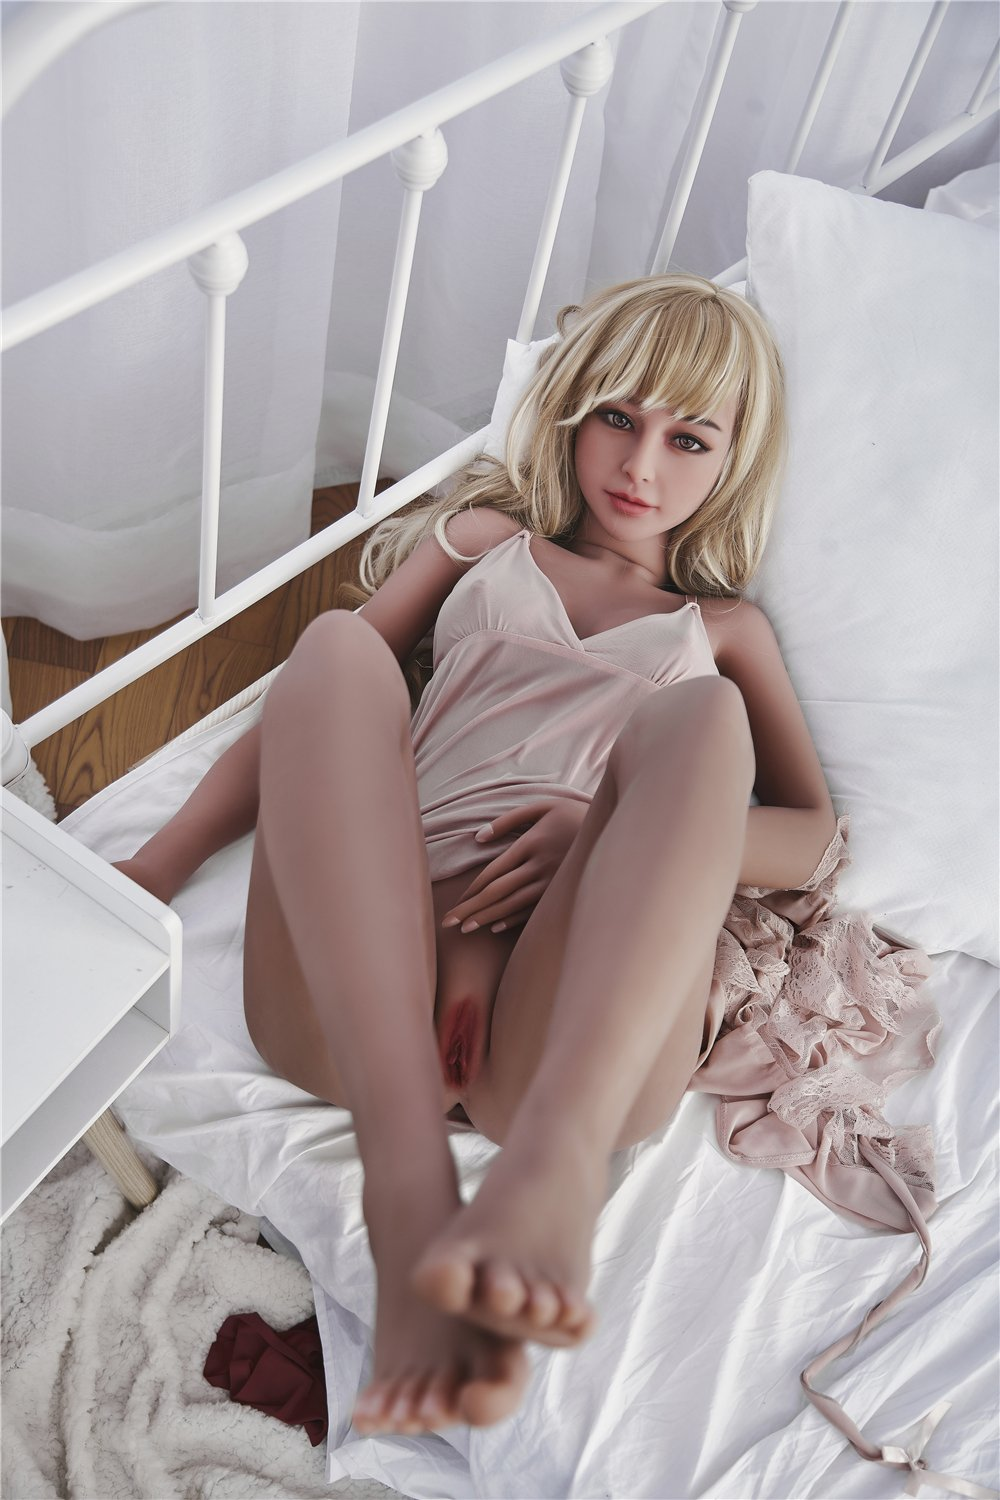 keala 155cm blonde medium tits athletic best flat chested tpe sex doll(3)